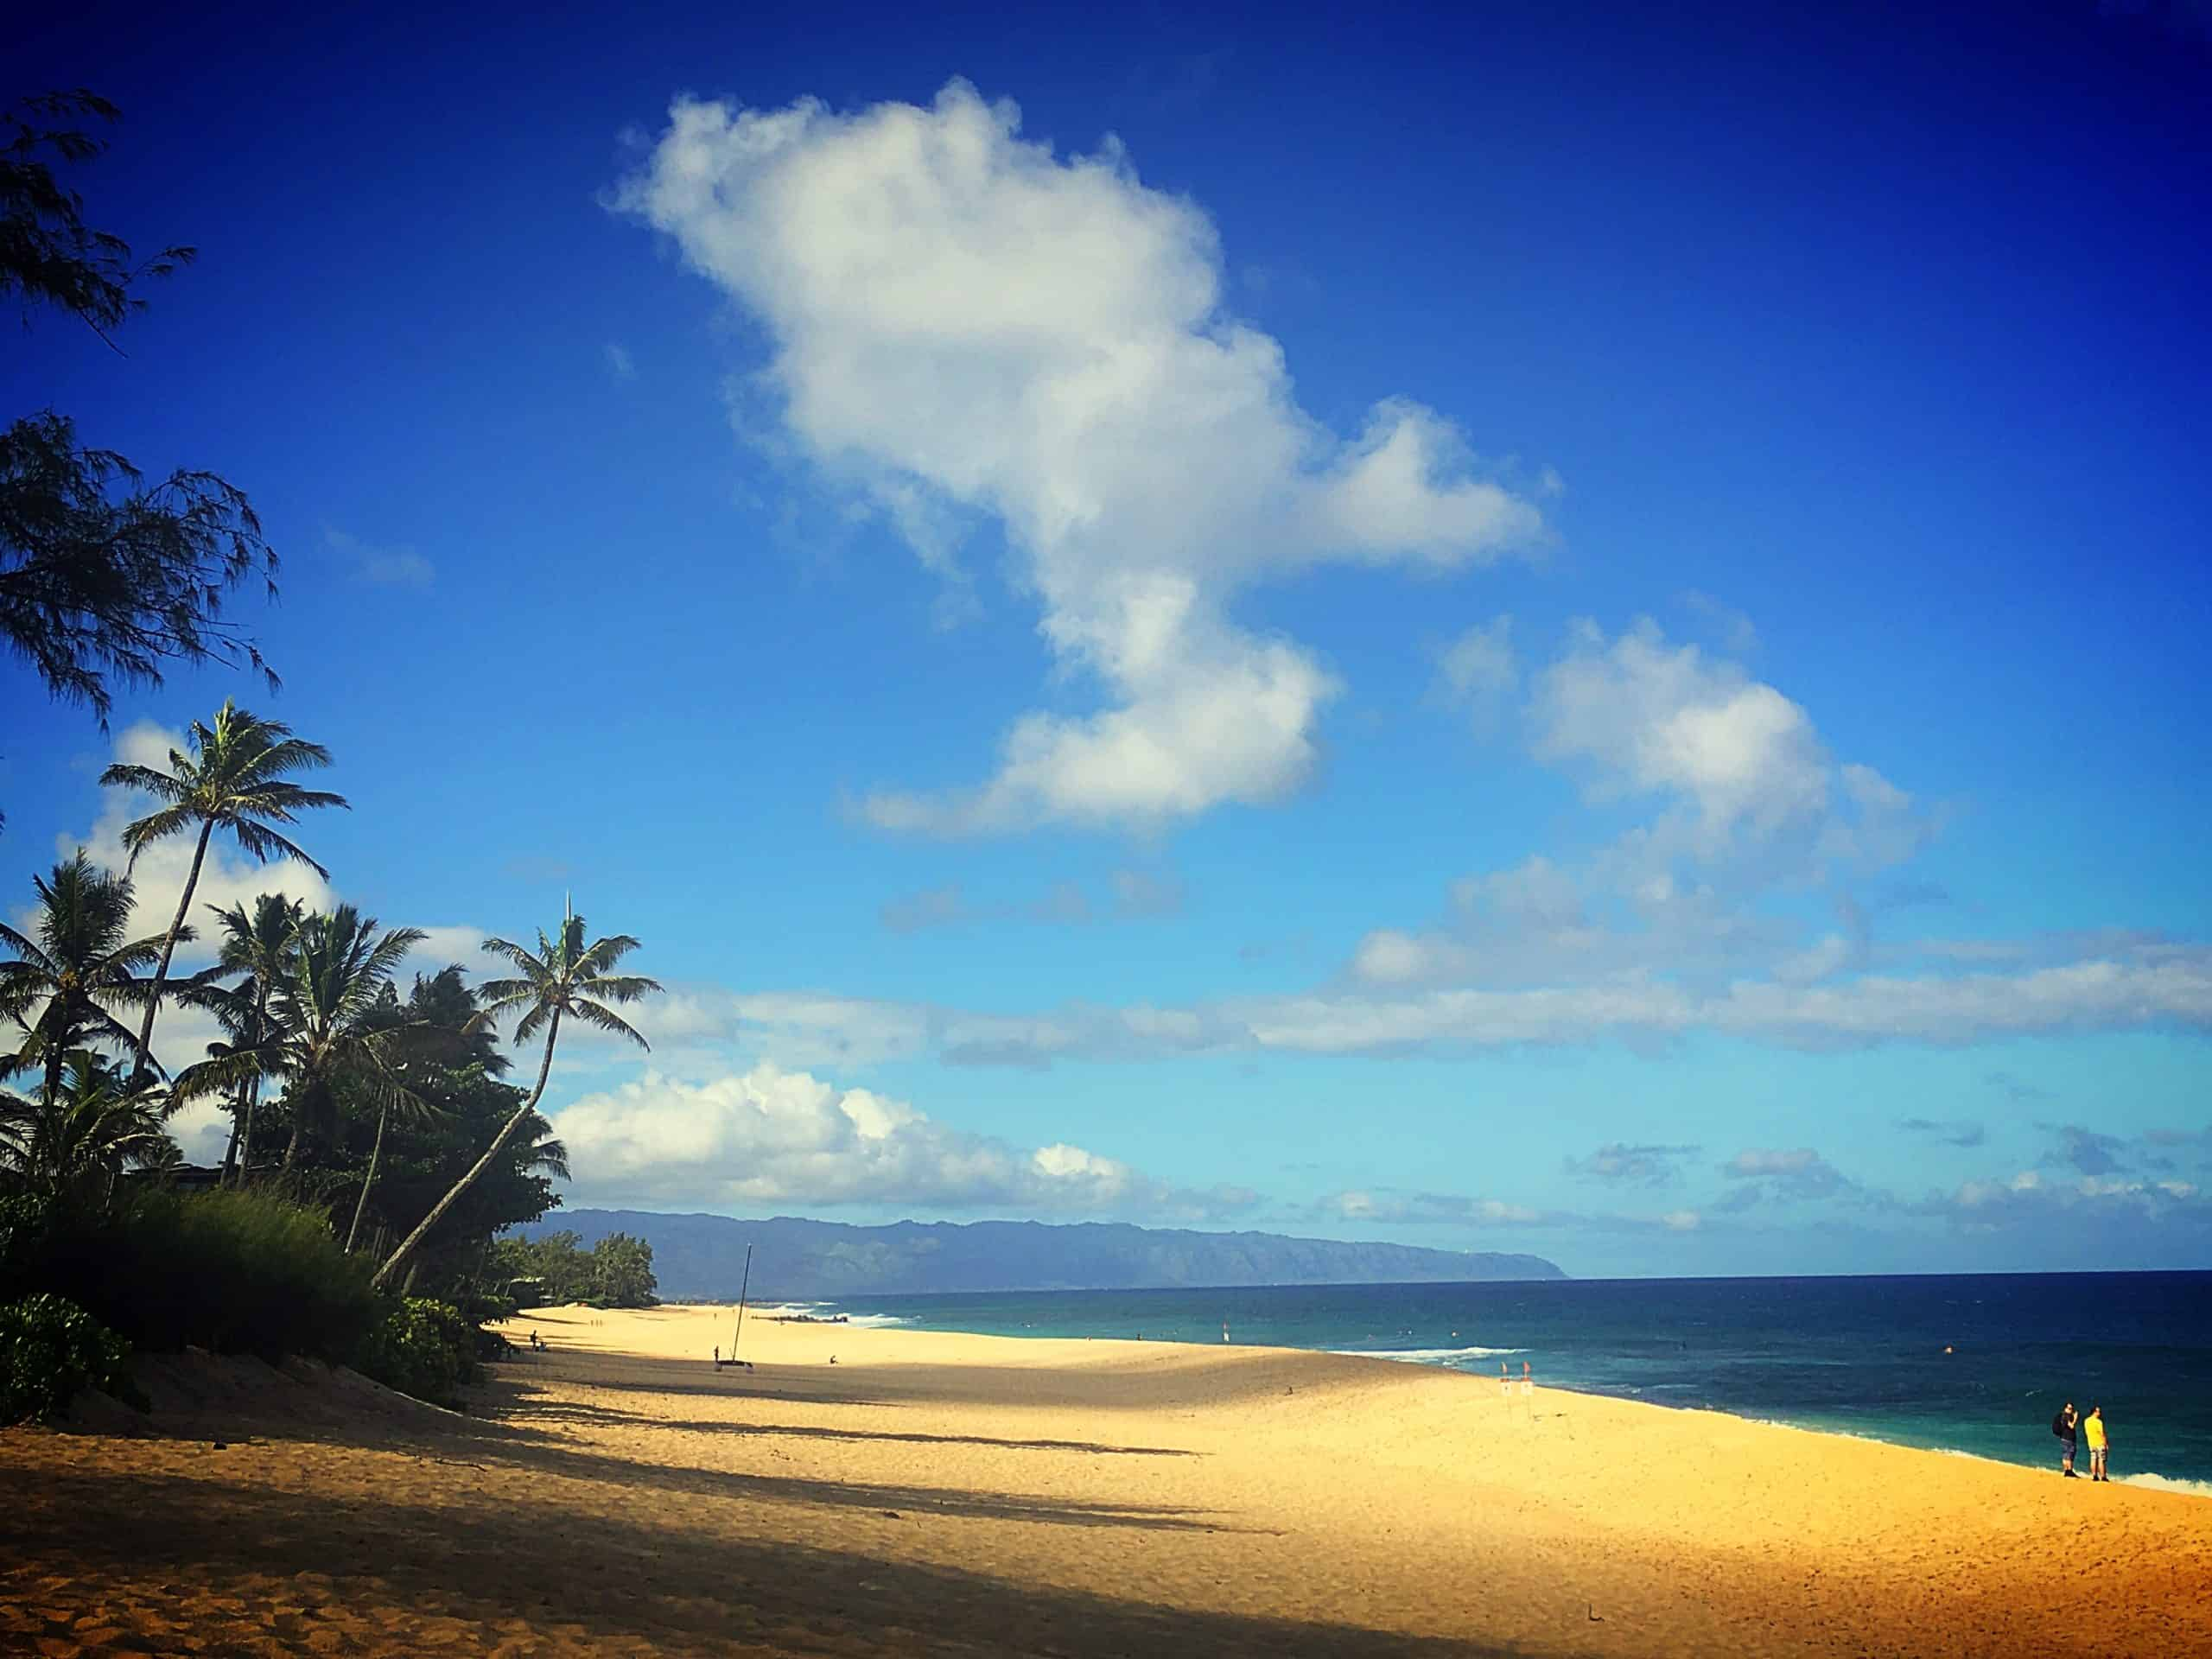 Banzai Pipeline Feature Photo